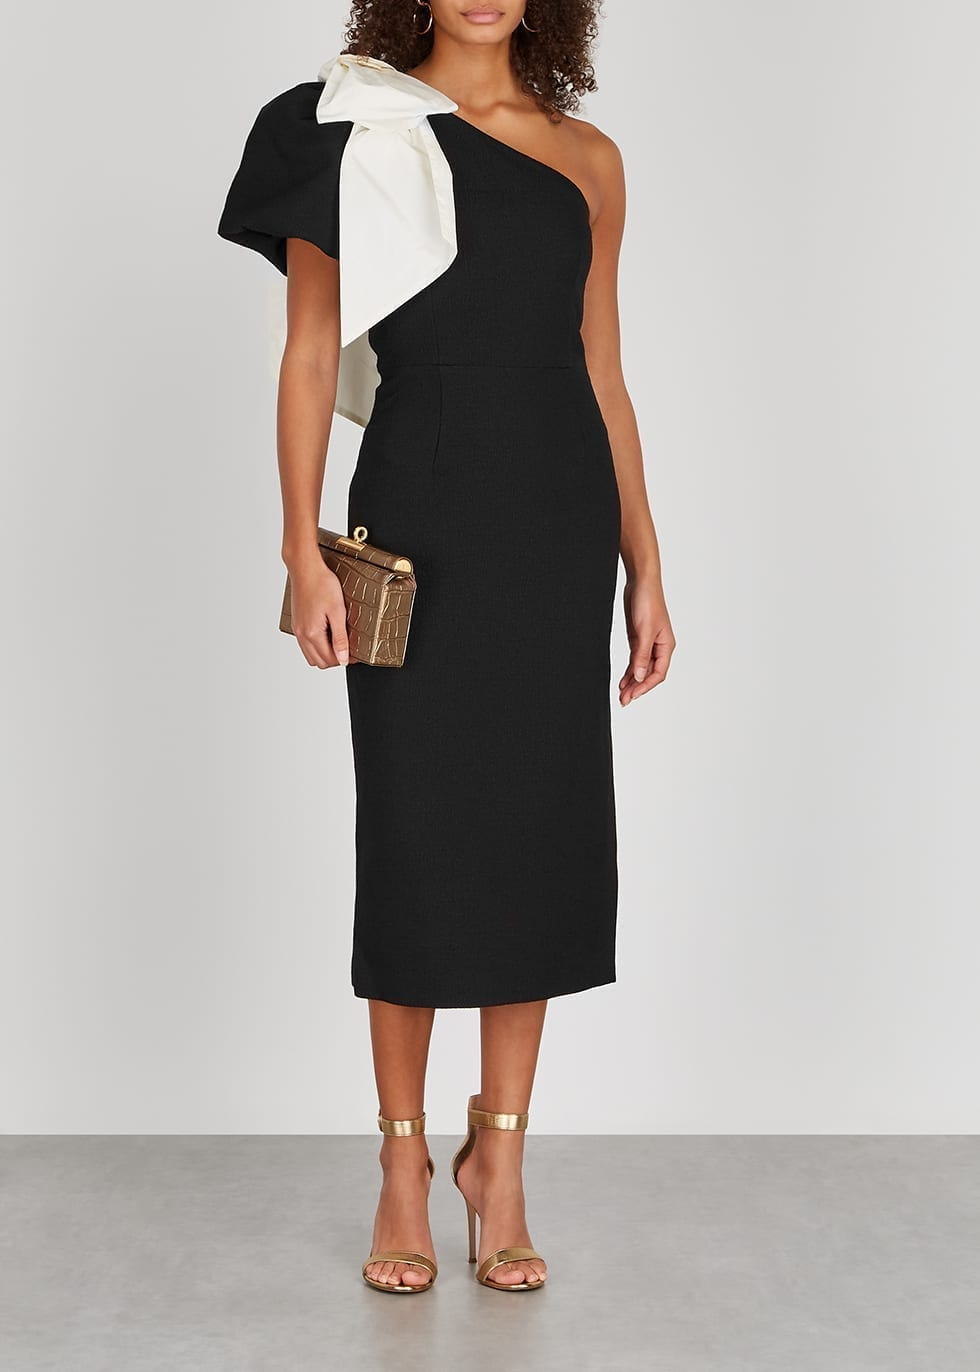 REBECCA VALLANCE Lavanda Black Bow-embellished Midi Dress